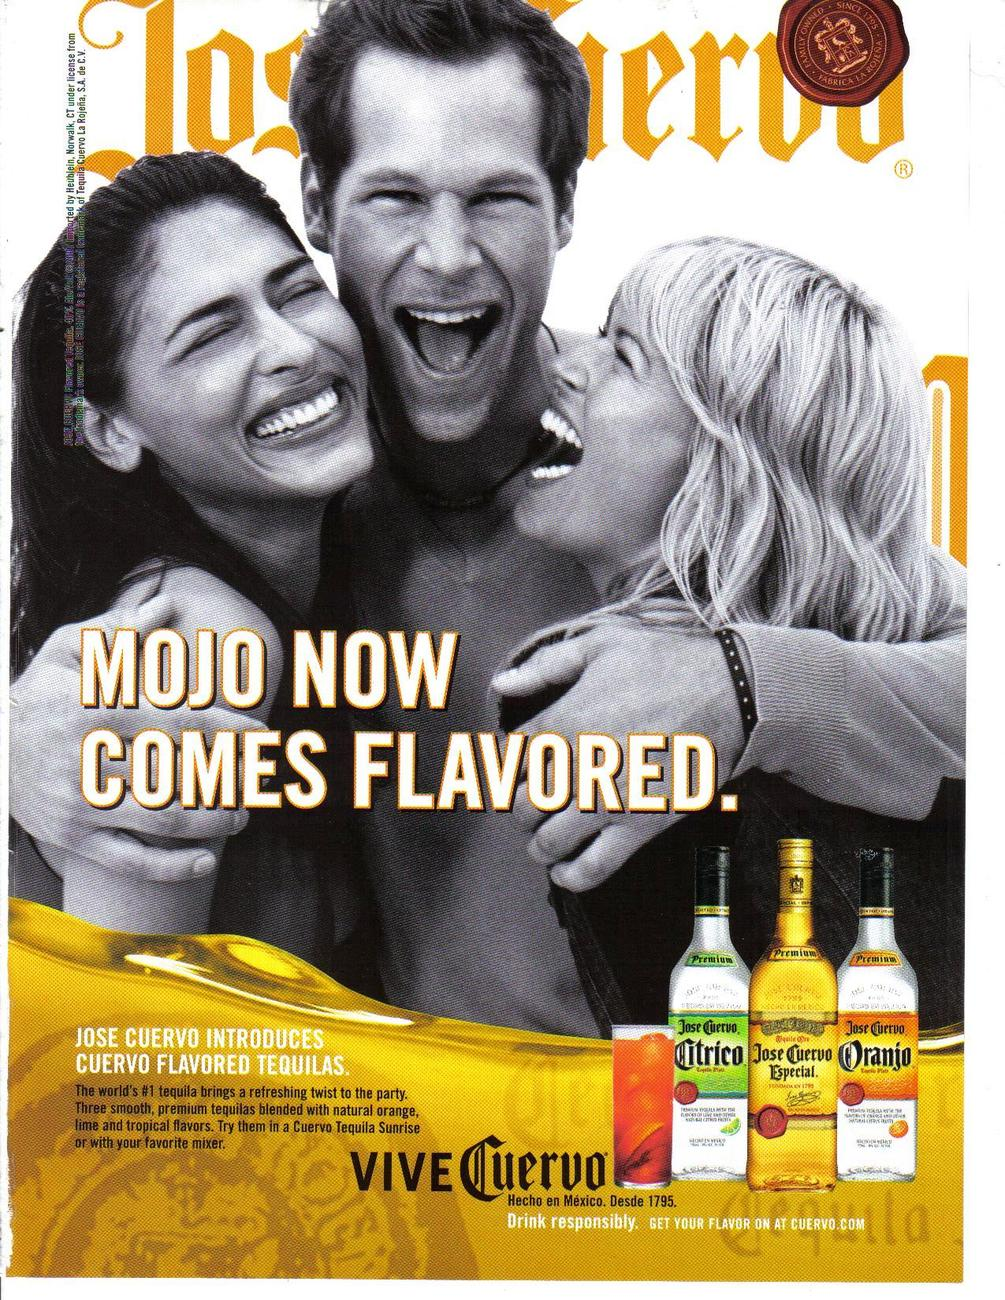 jose cuervo full page color print ad mojo and 28 similar items - Full Page Color